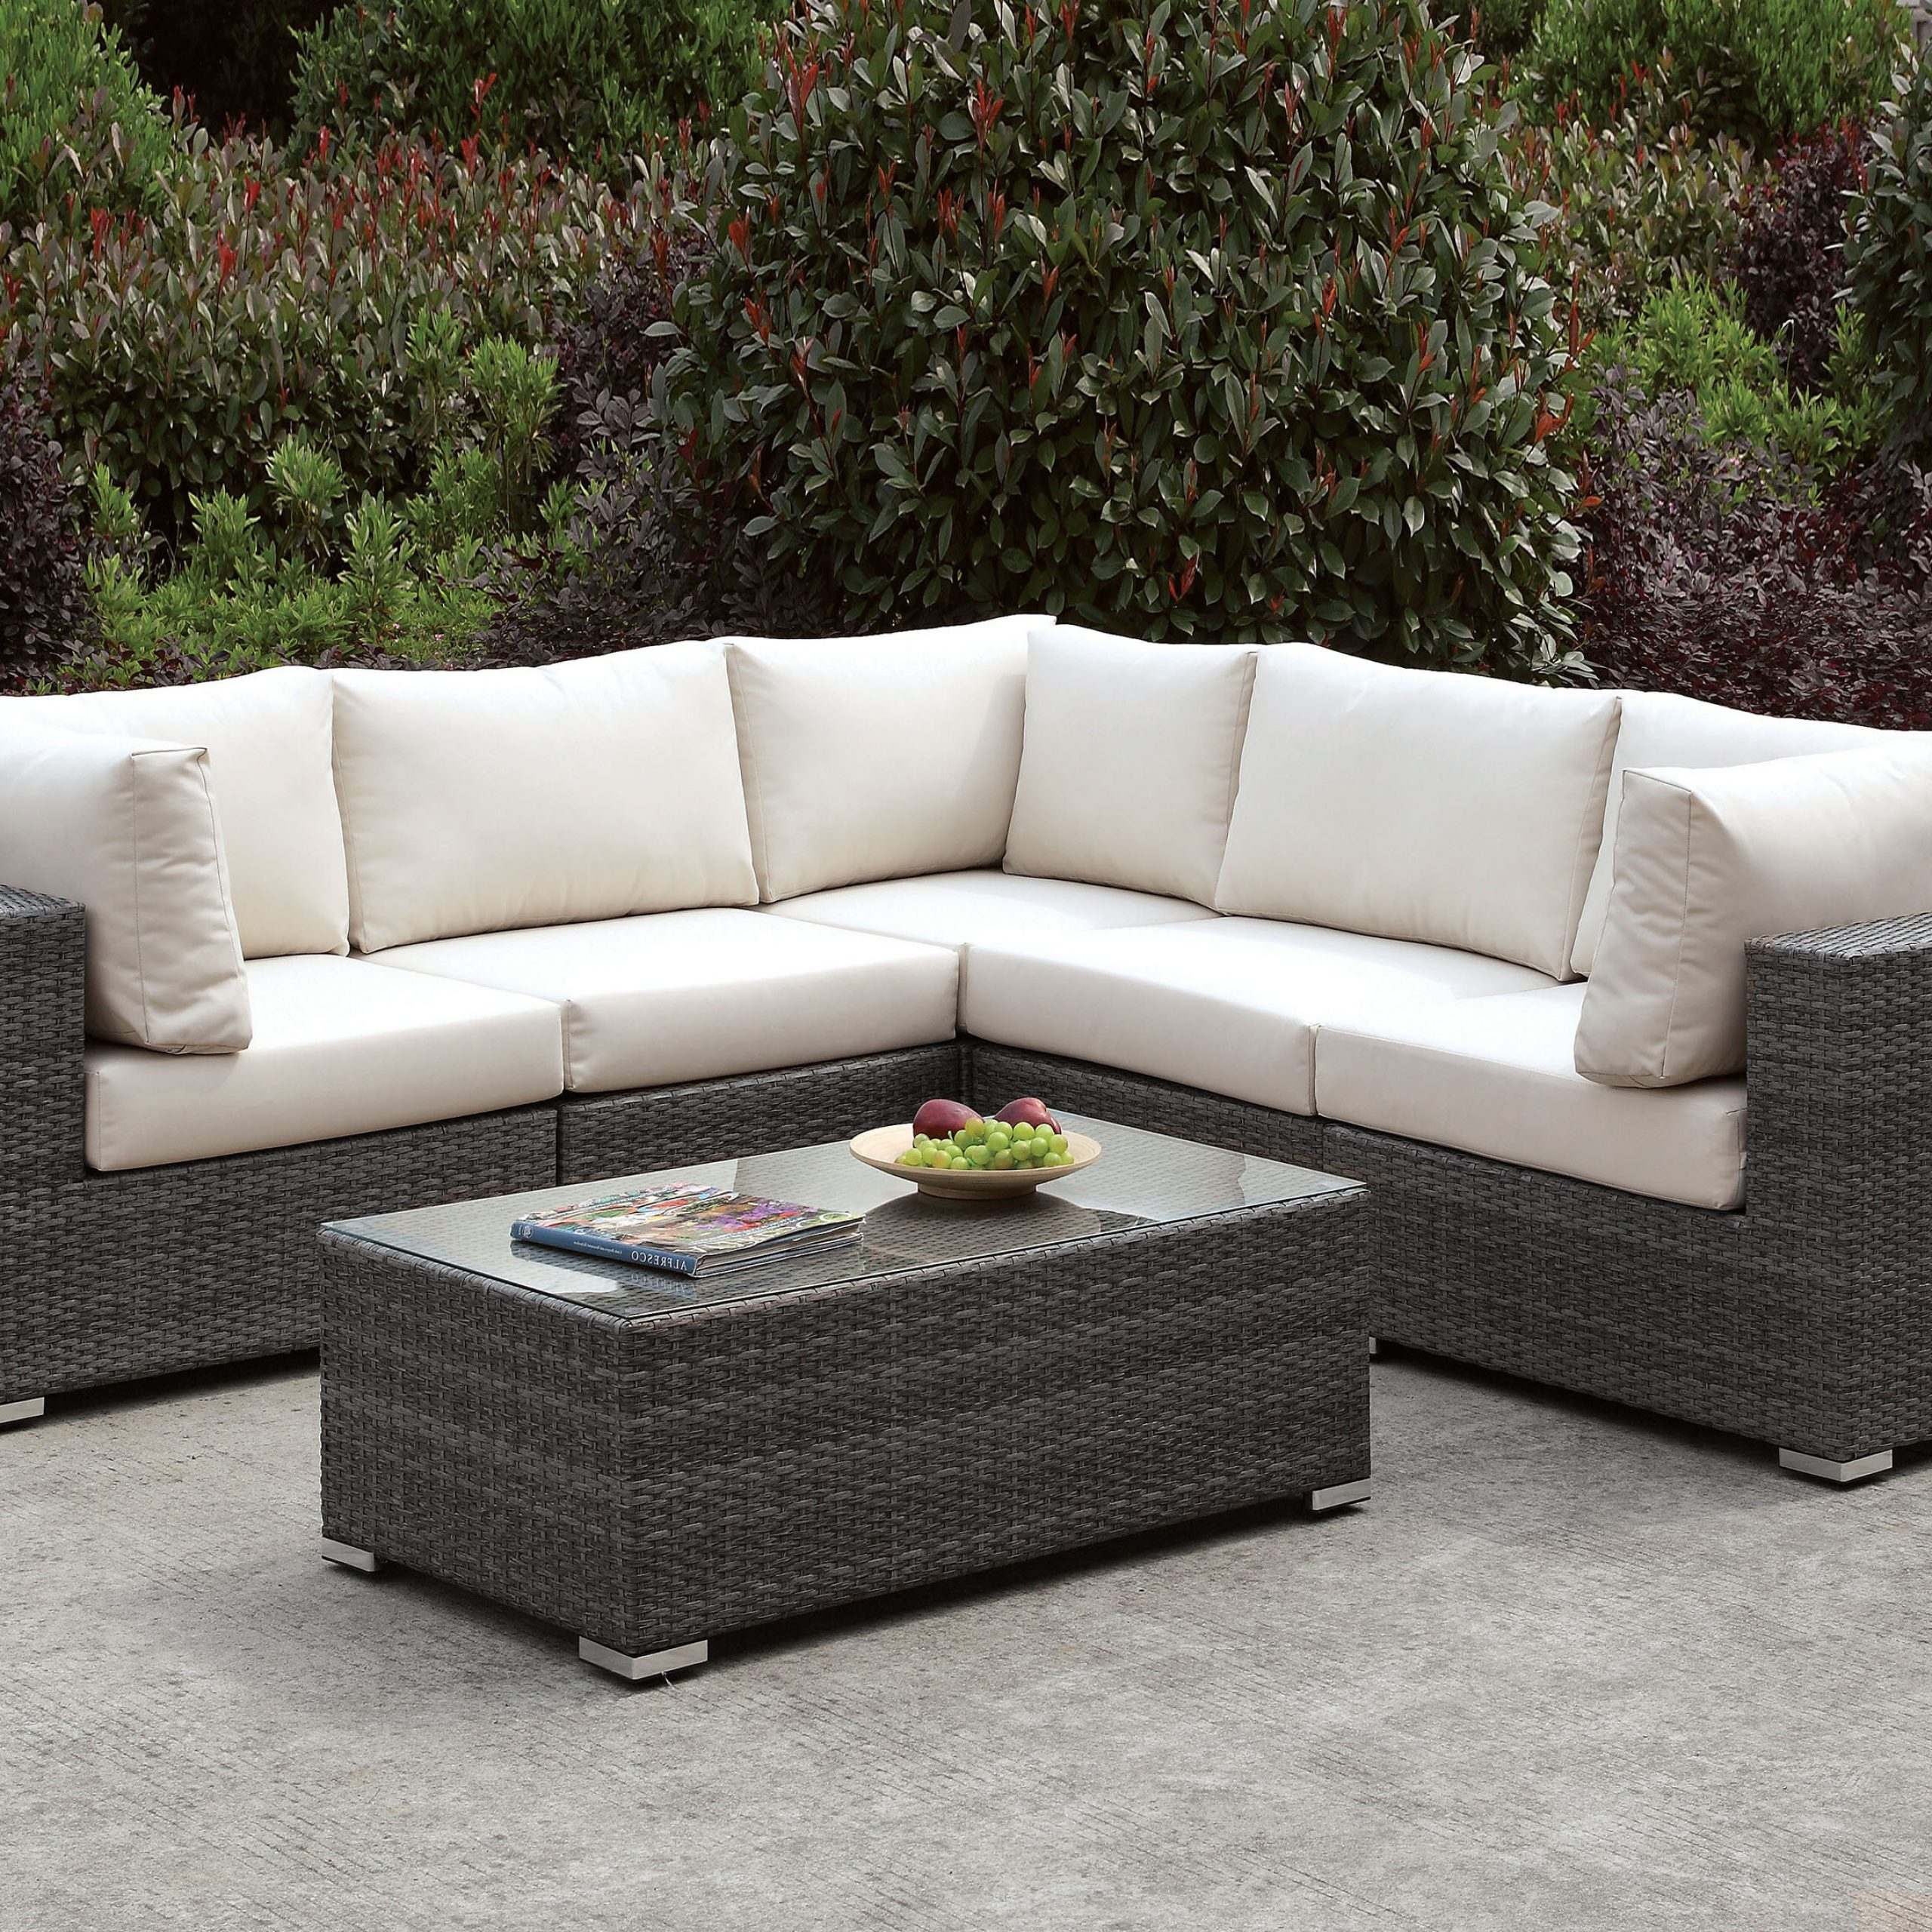 Ostrowski Patio Sectionals With Cushions For Most Recent Peters 3 Piece Sectional Collection (View 23 of 25)